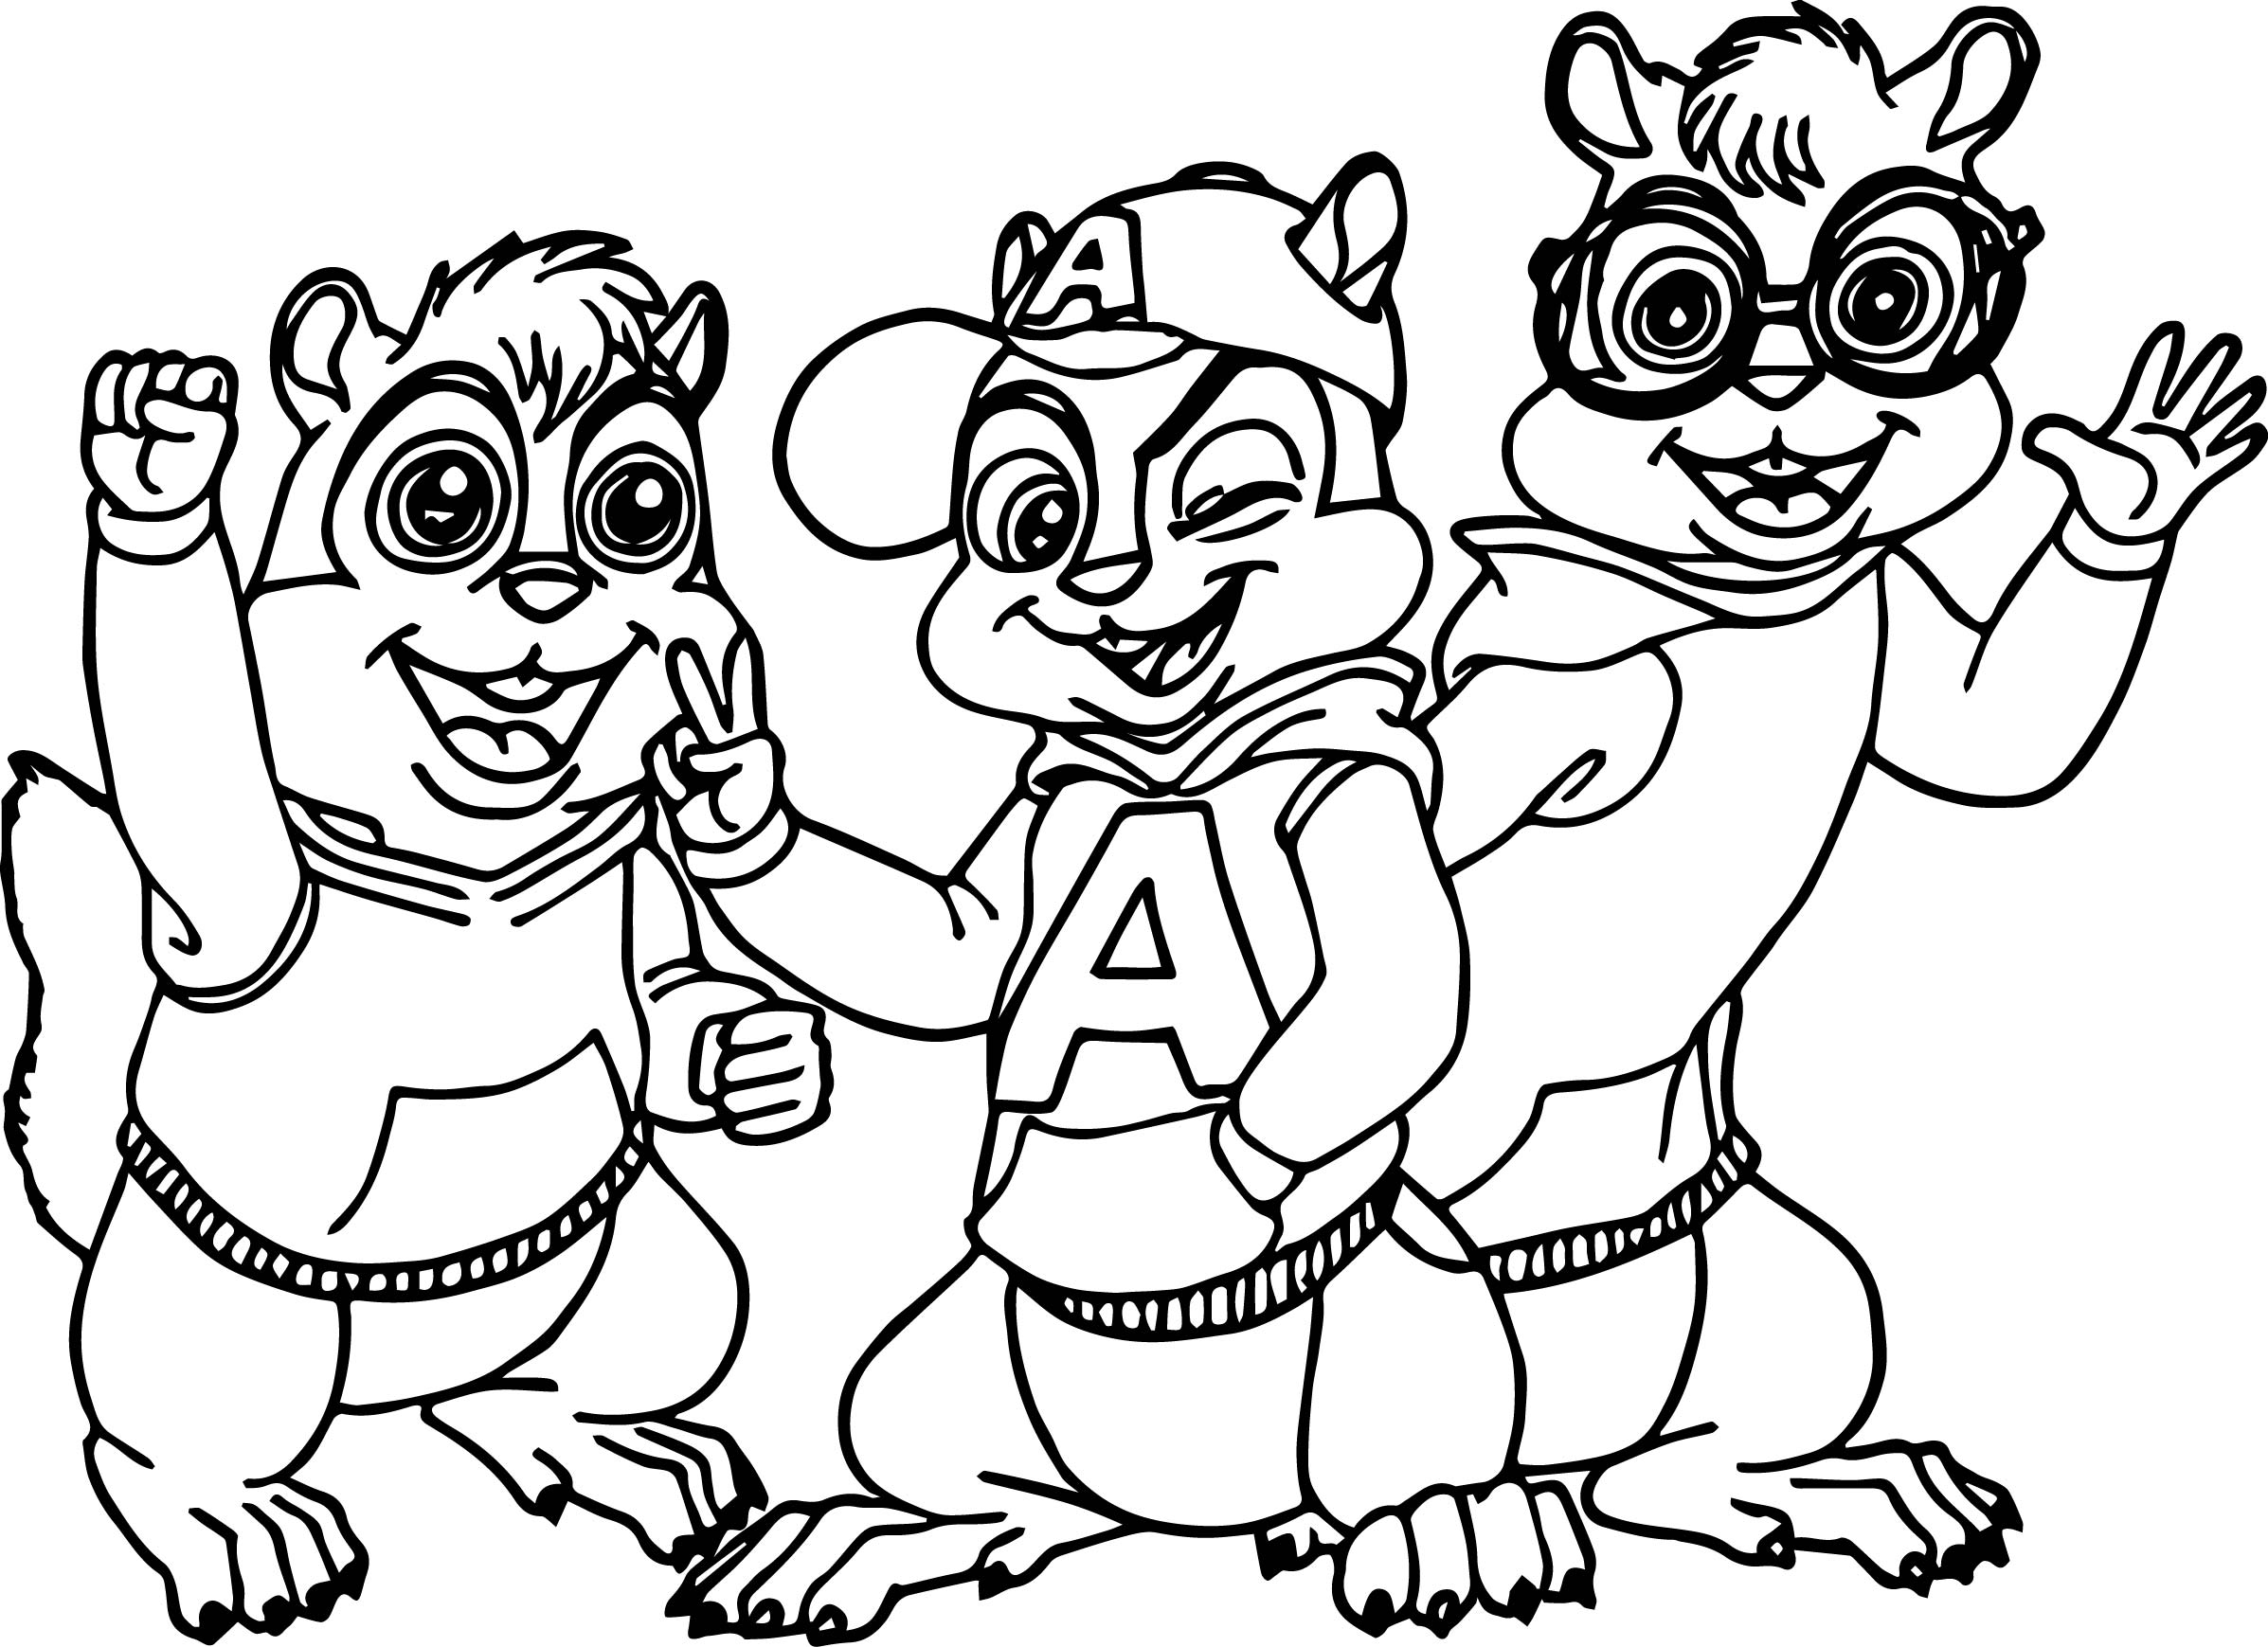 Alvin simon and theodore alvin and the chipmunks coloring for Chipmunks coloring pages